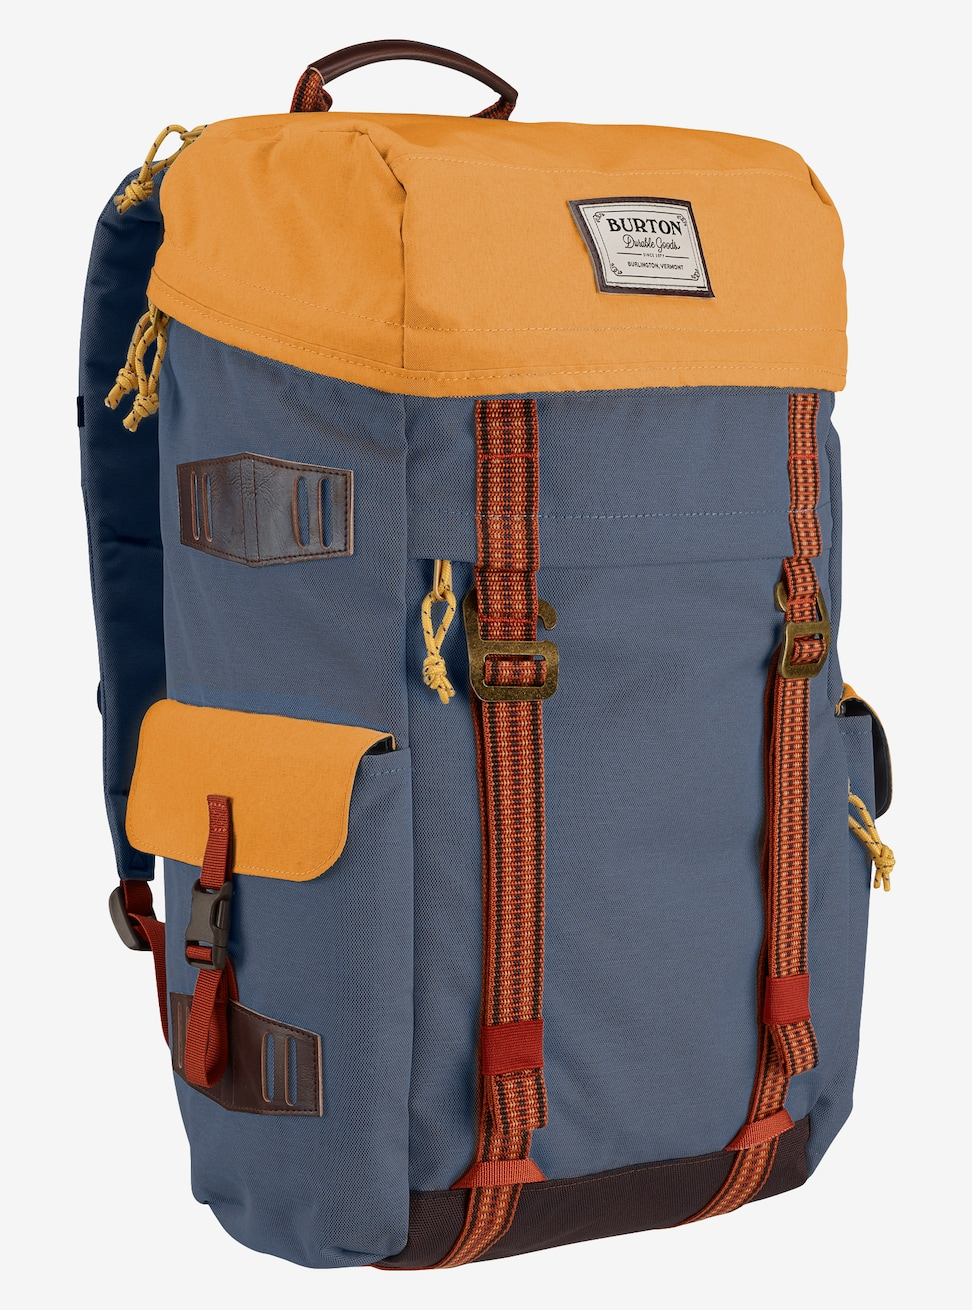 External webbing, Annex Backpack By Burton